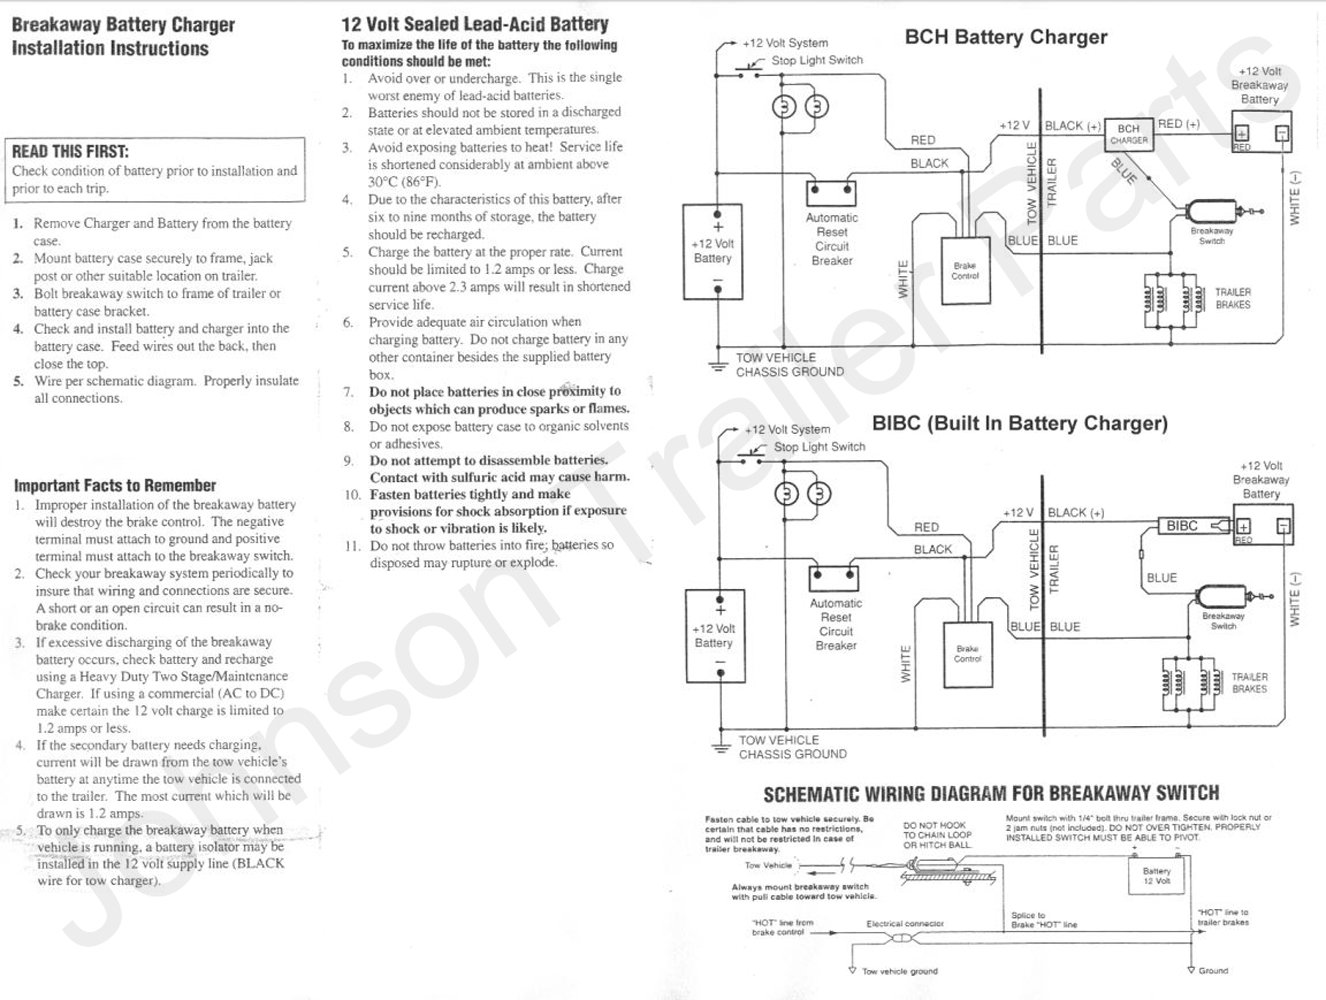 718PvzZr5ZL._SL1326_ amazon com trailer breakaway kit led readout breakaway switch tekonsha breakaway system wiring diagram at bakdesigns.co